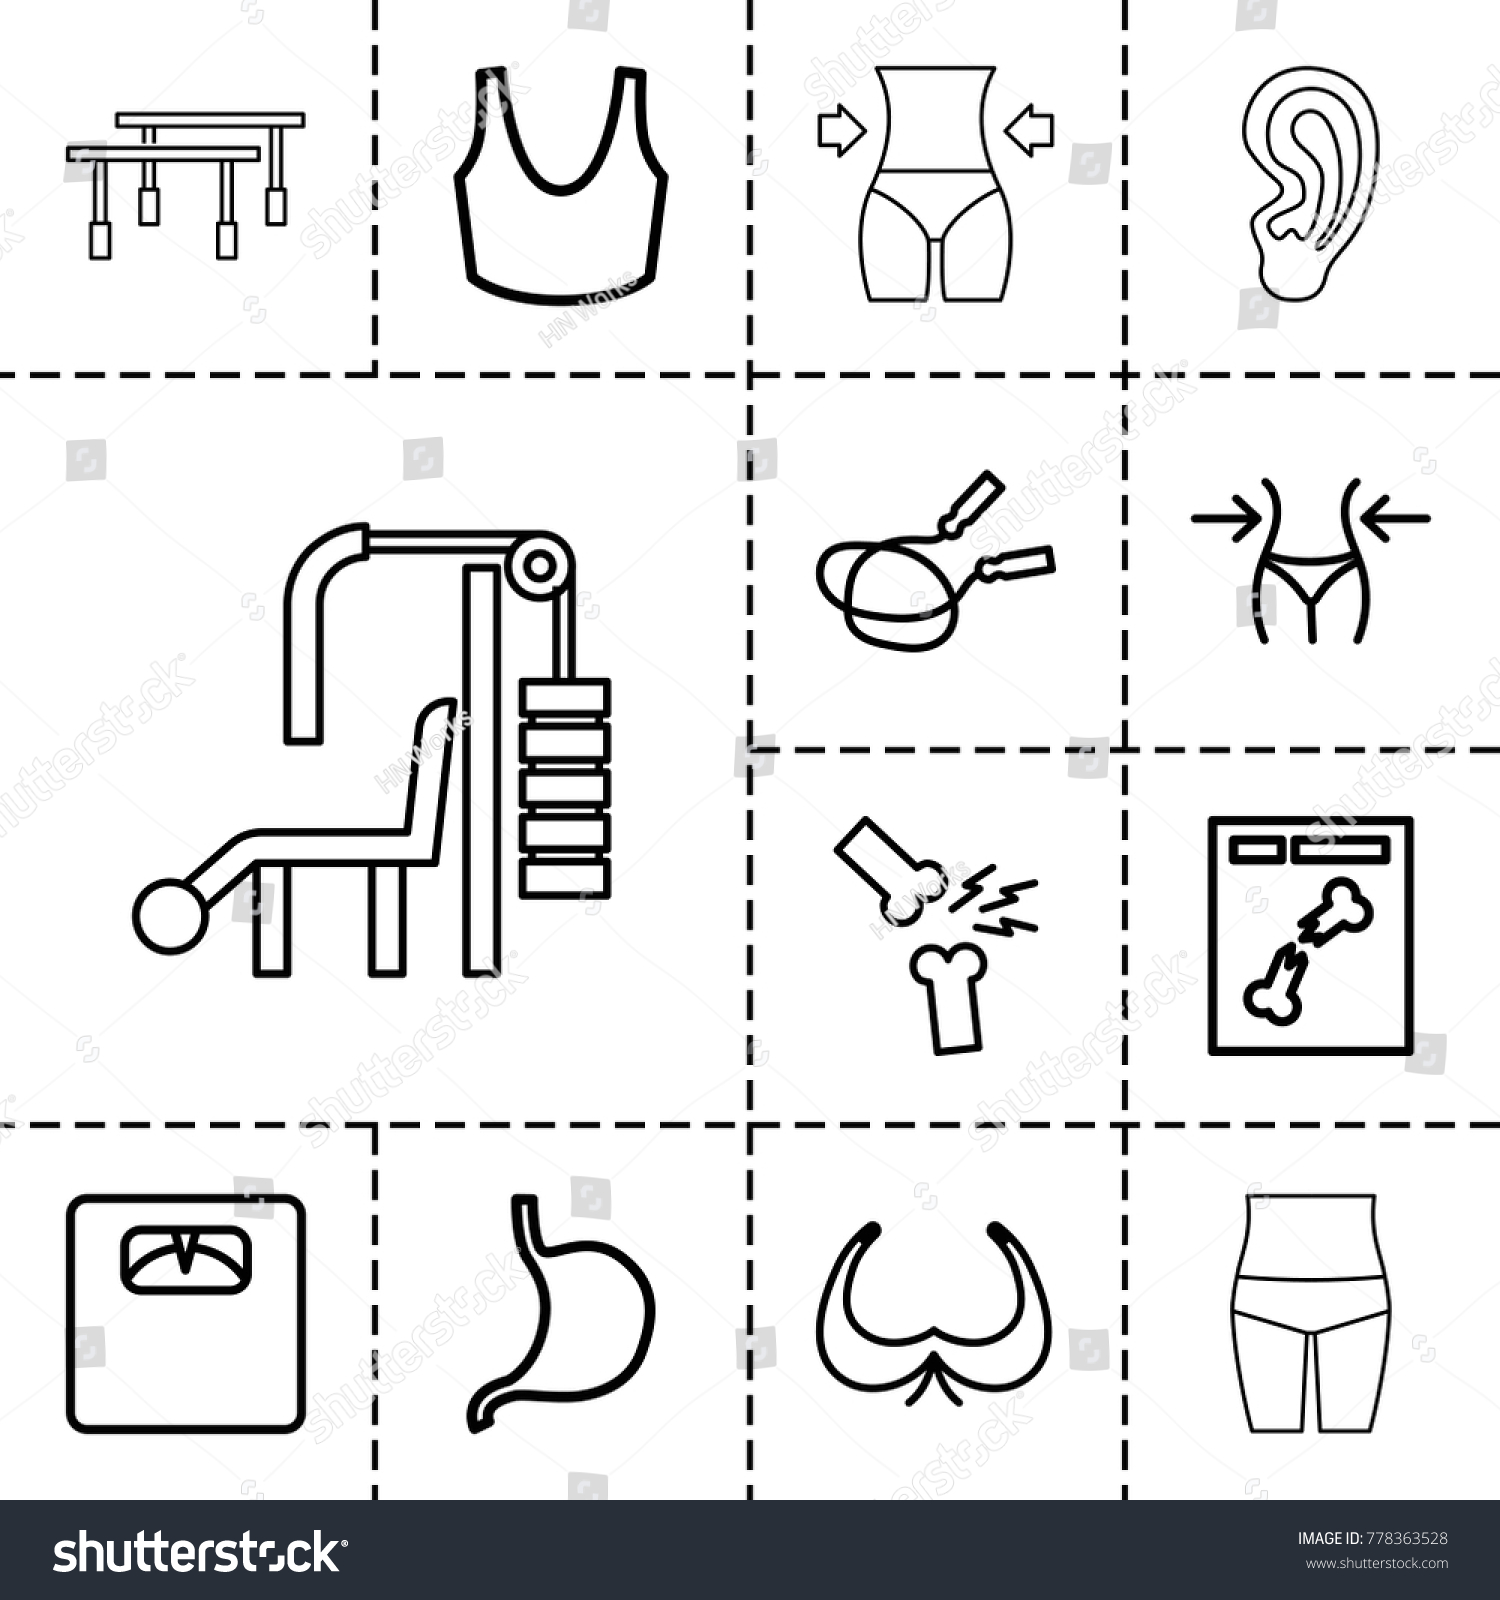 Body icons set 13 editable outline stock vector 778363528 shutterstock body icons set of 13 editable outline body icons such as bra jump rope buycottarizona Gallery